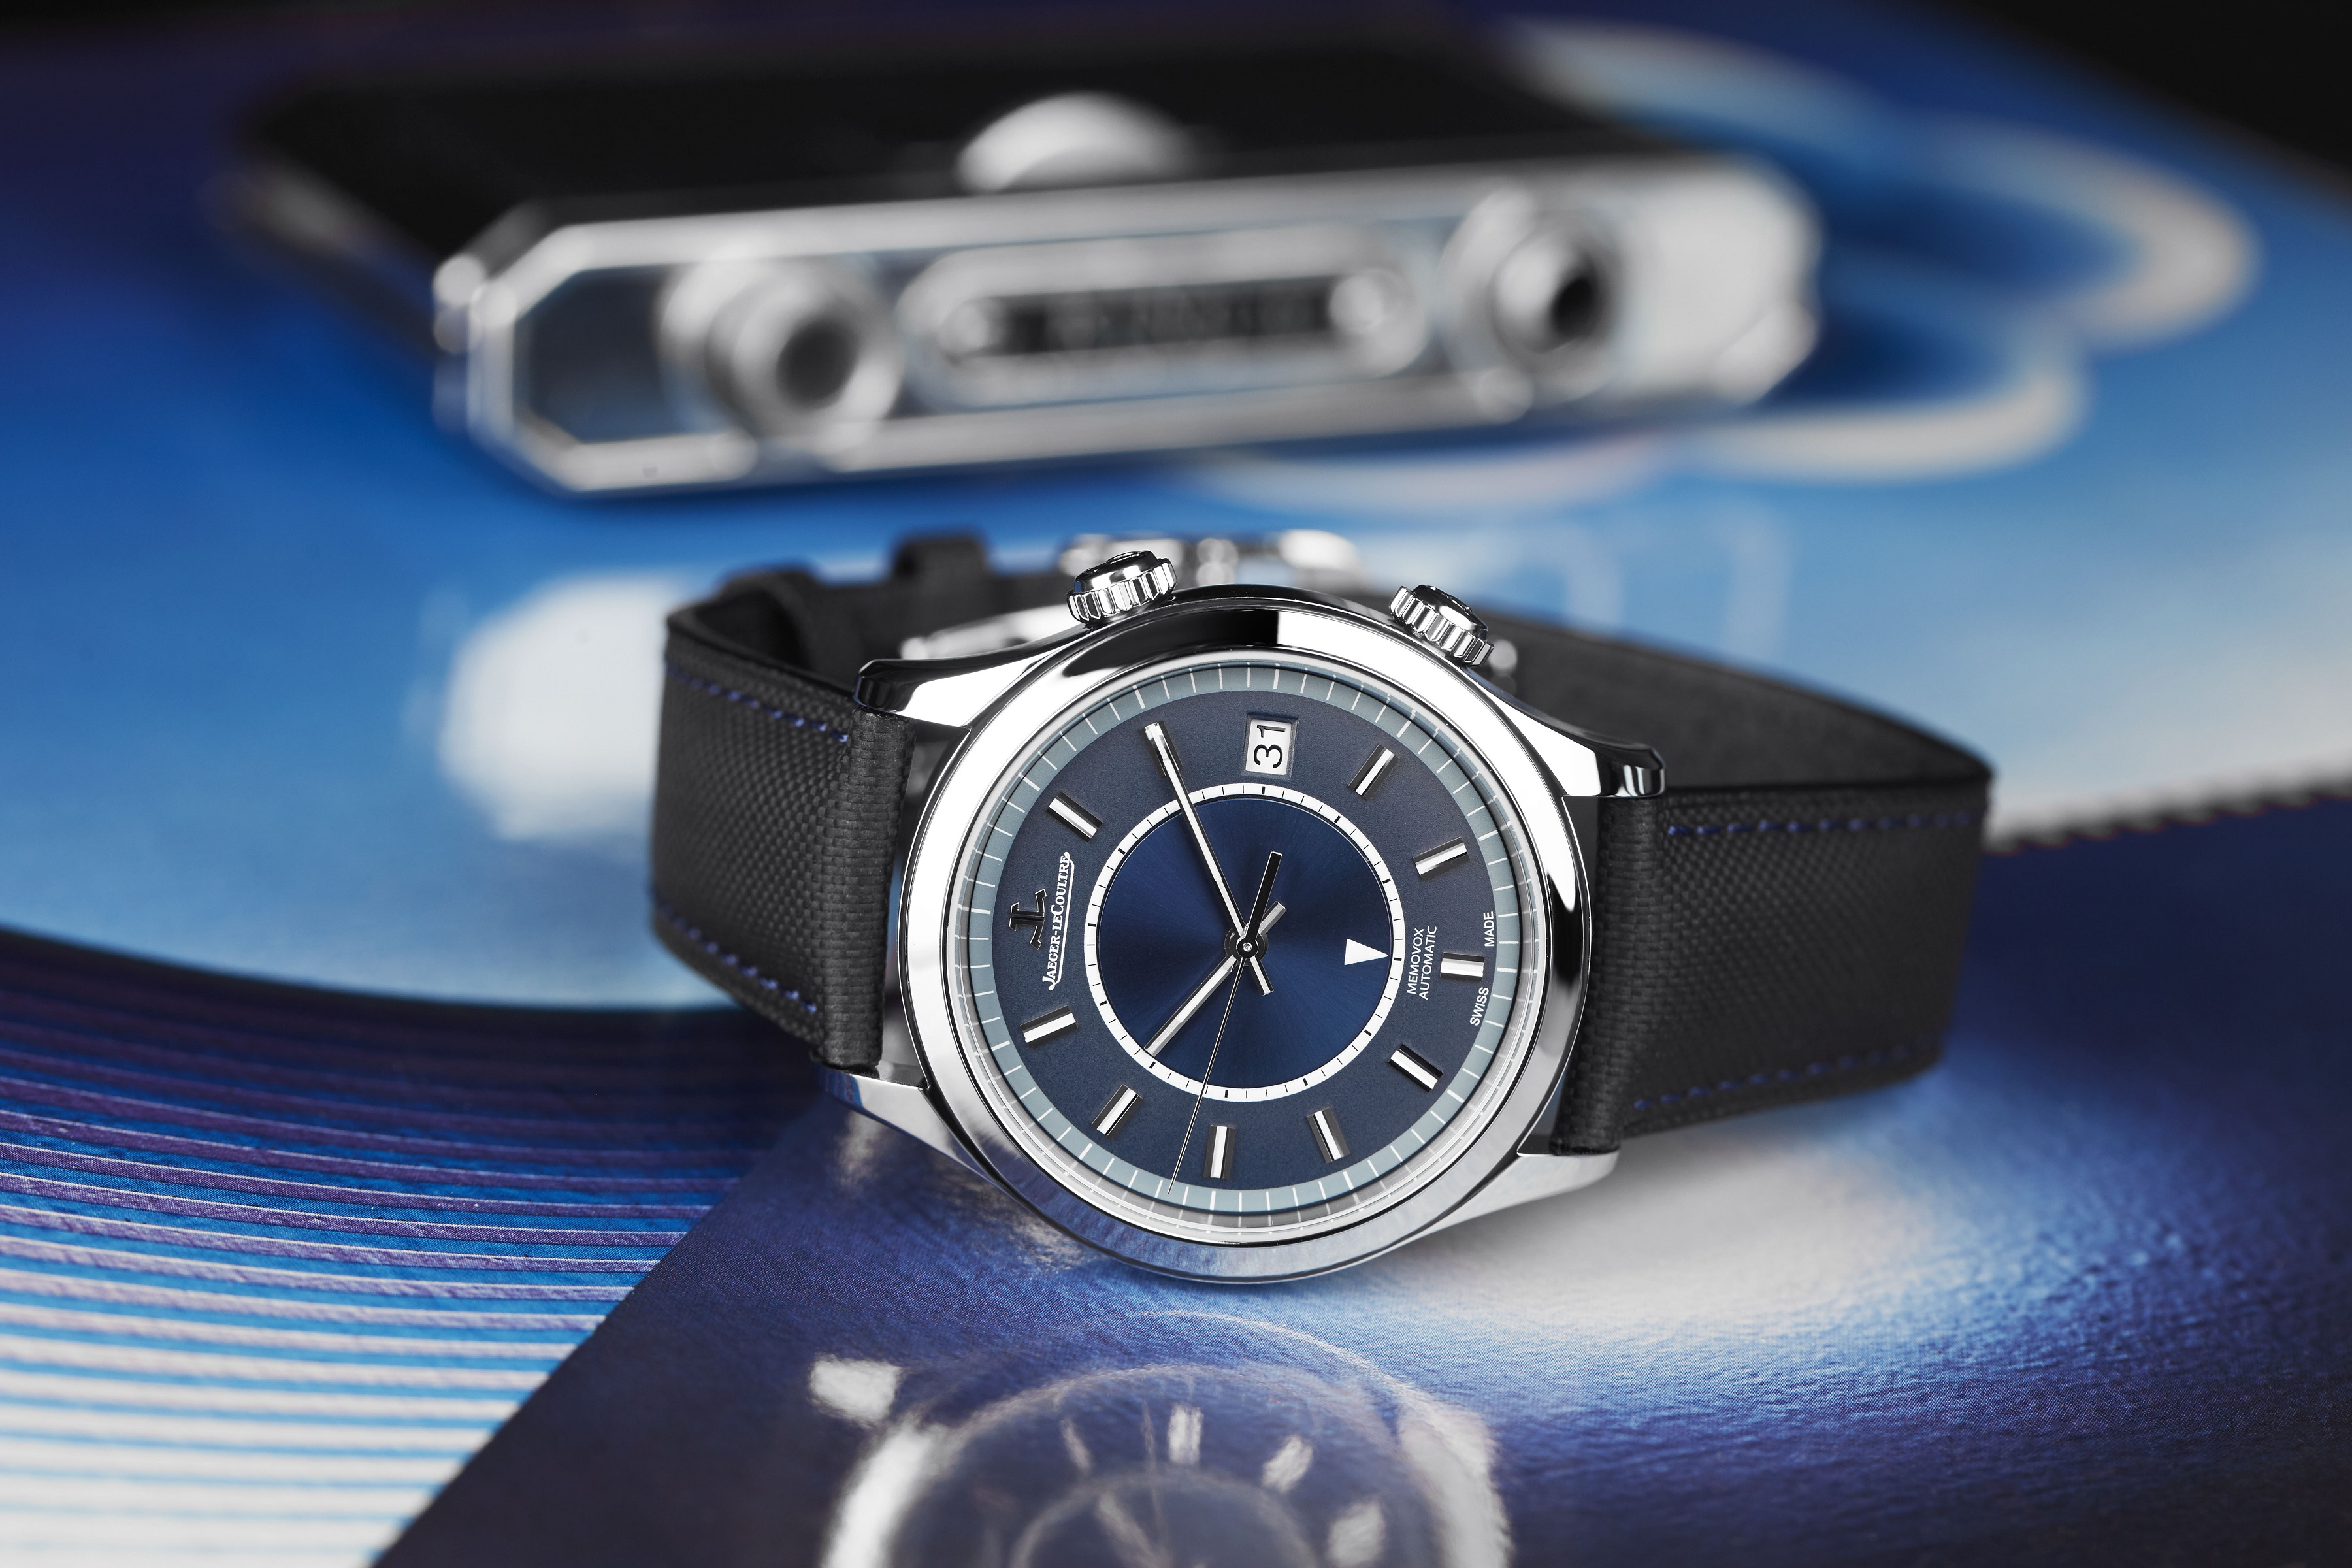 Jaeger-LeCoultre's new Master Memovox Boutique Edition